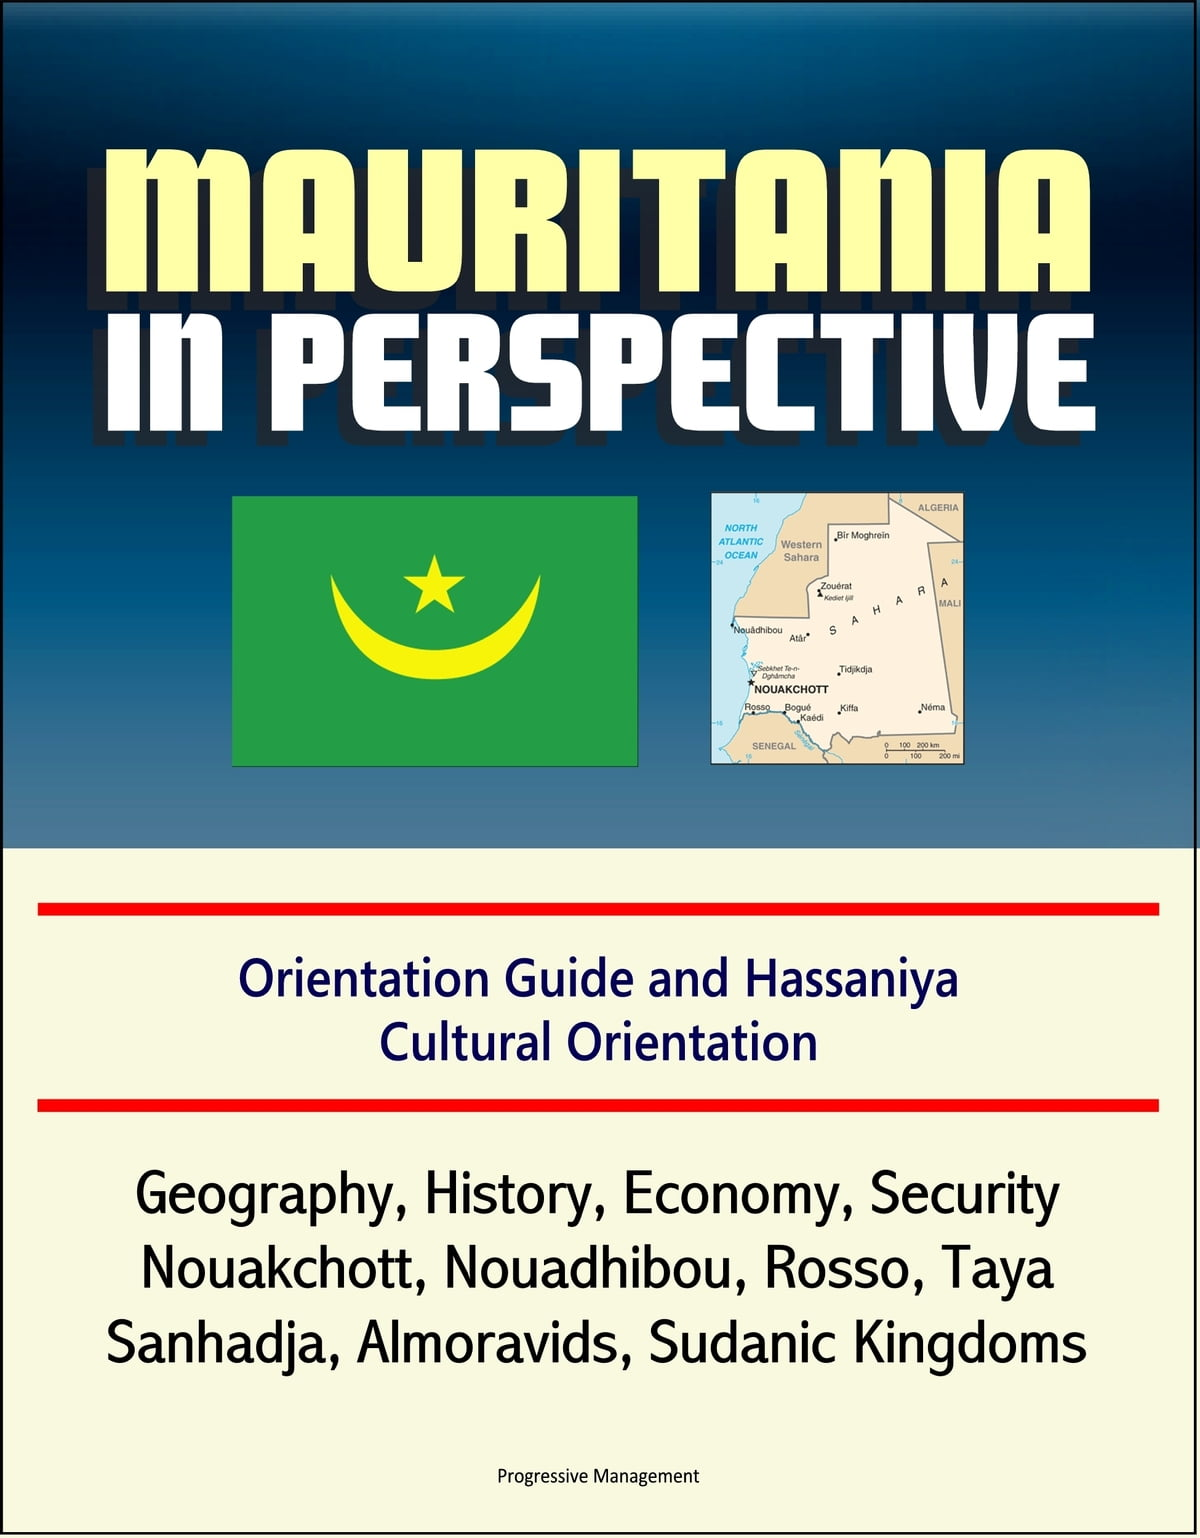 Mauritania in Perspective: Orientation Guide and Hassaniya Cultural  Orientation: Geography, History, Economy, Security, Nouakchott, Nouadhibou,  Rosso,